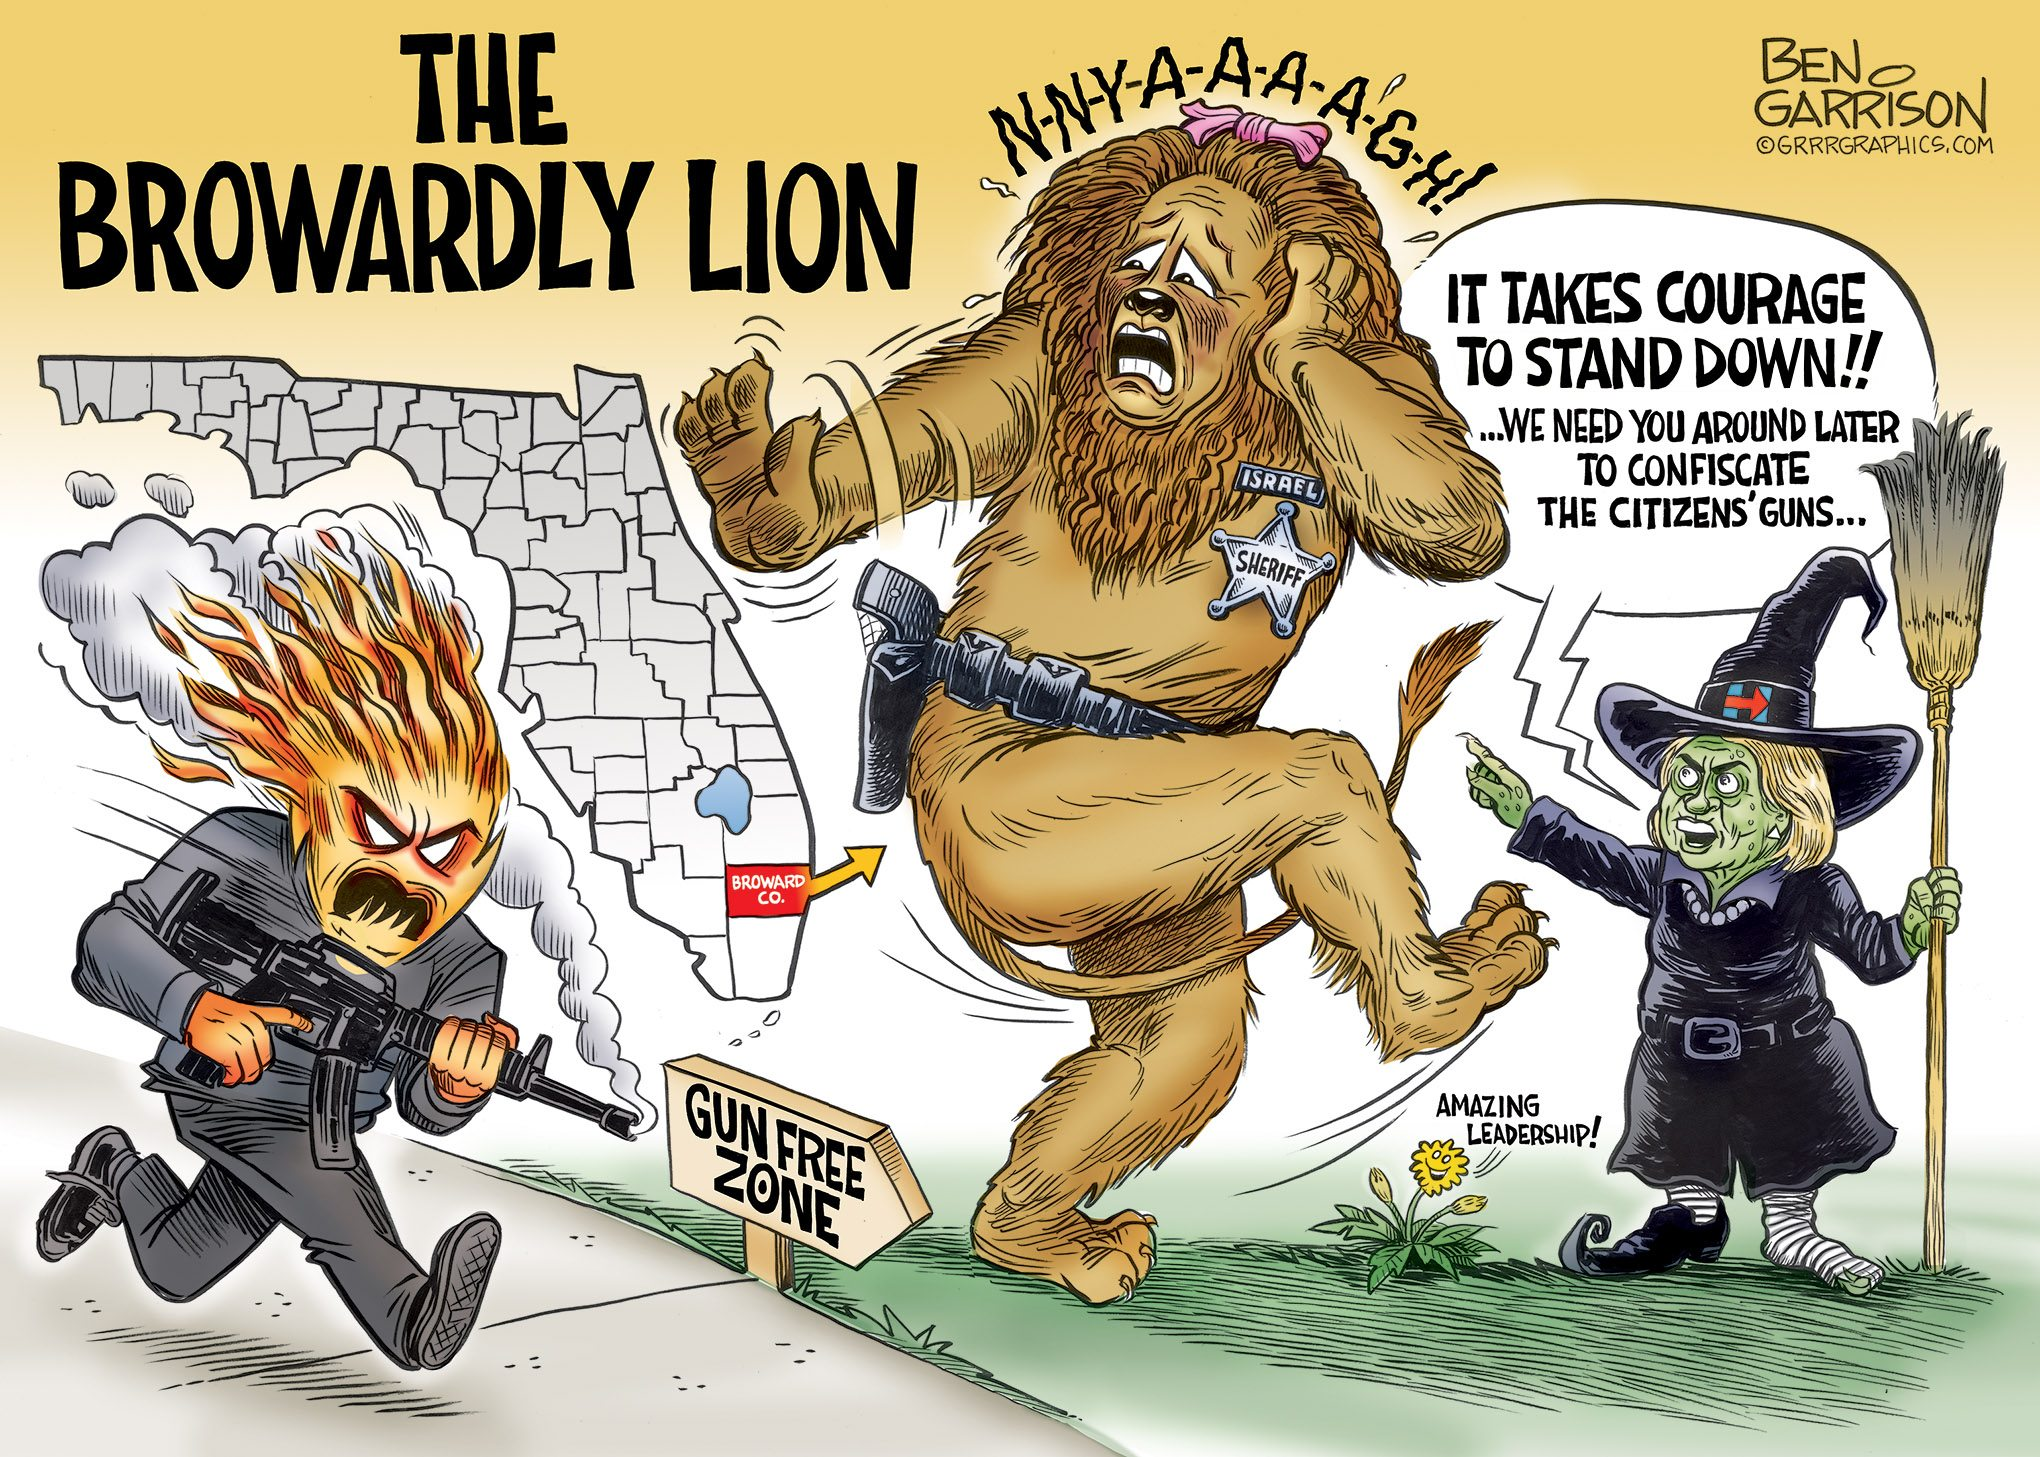 The Browardly Lion